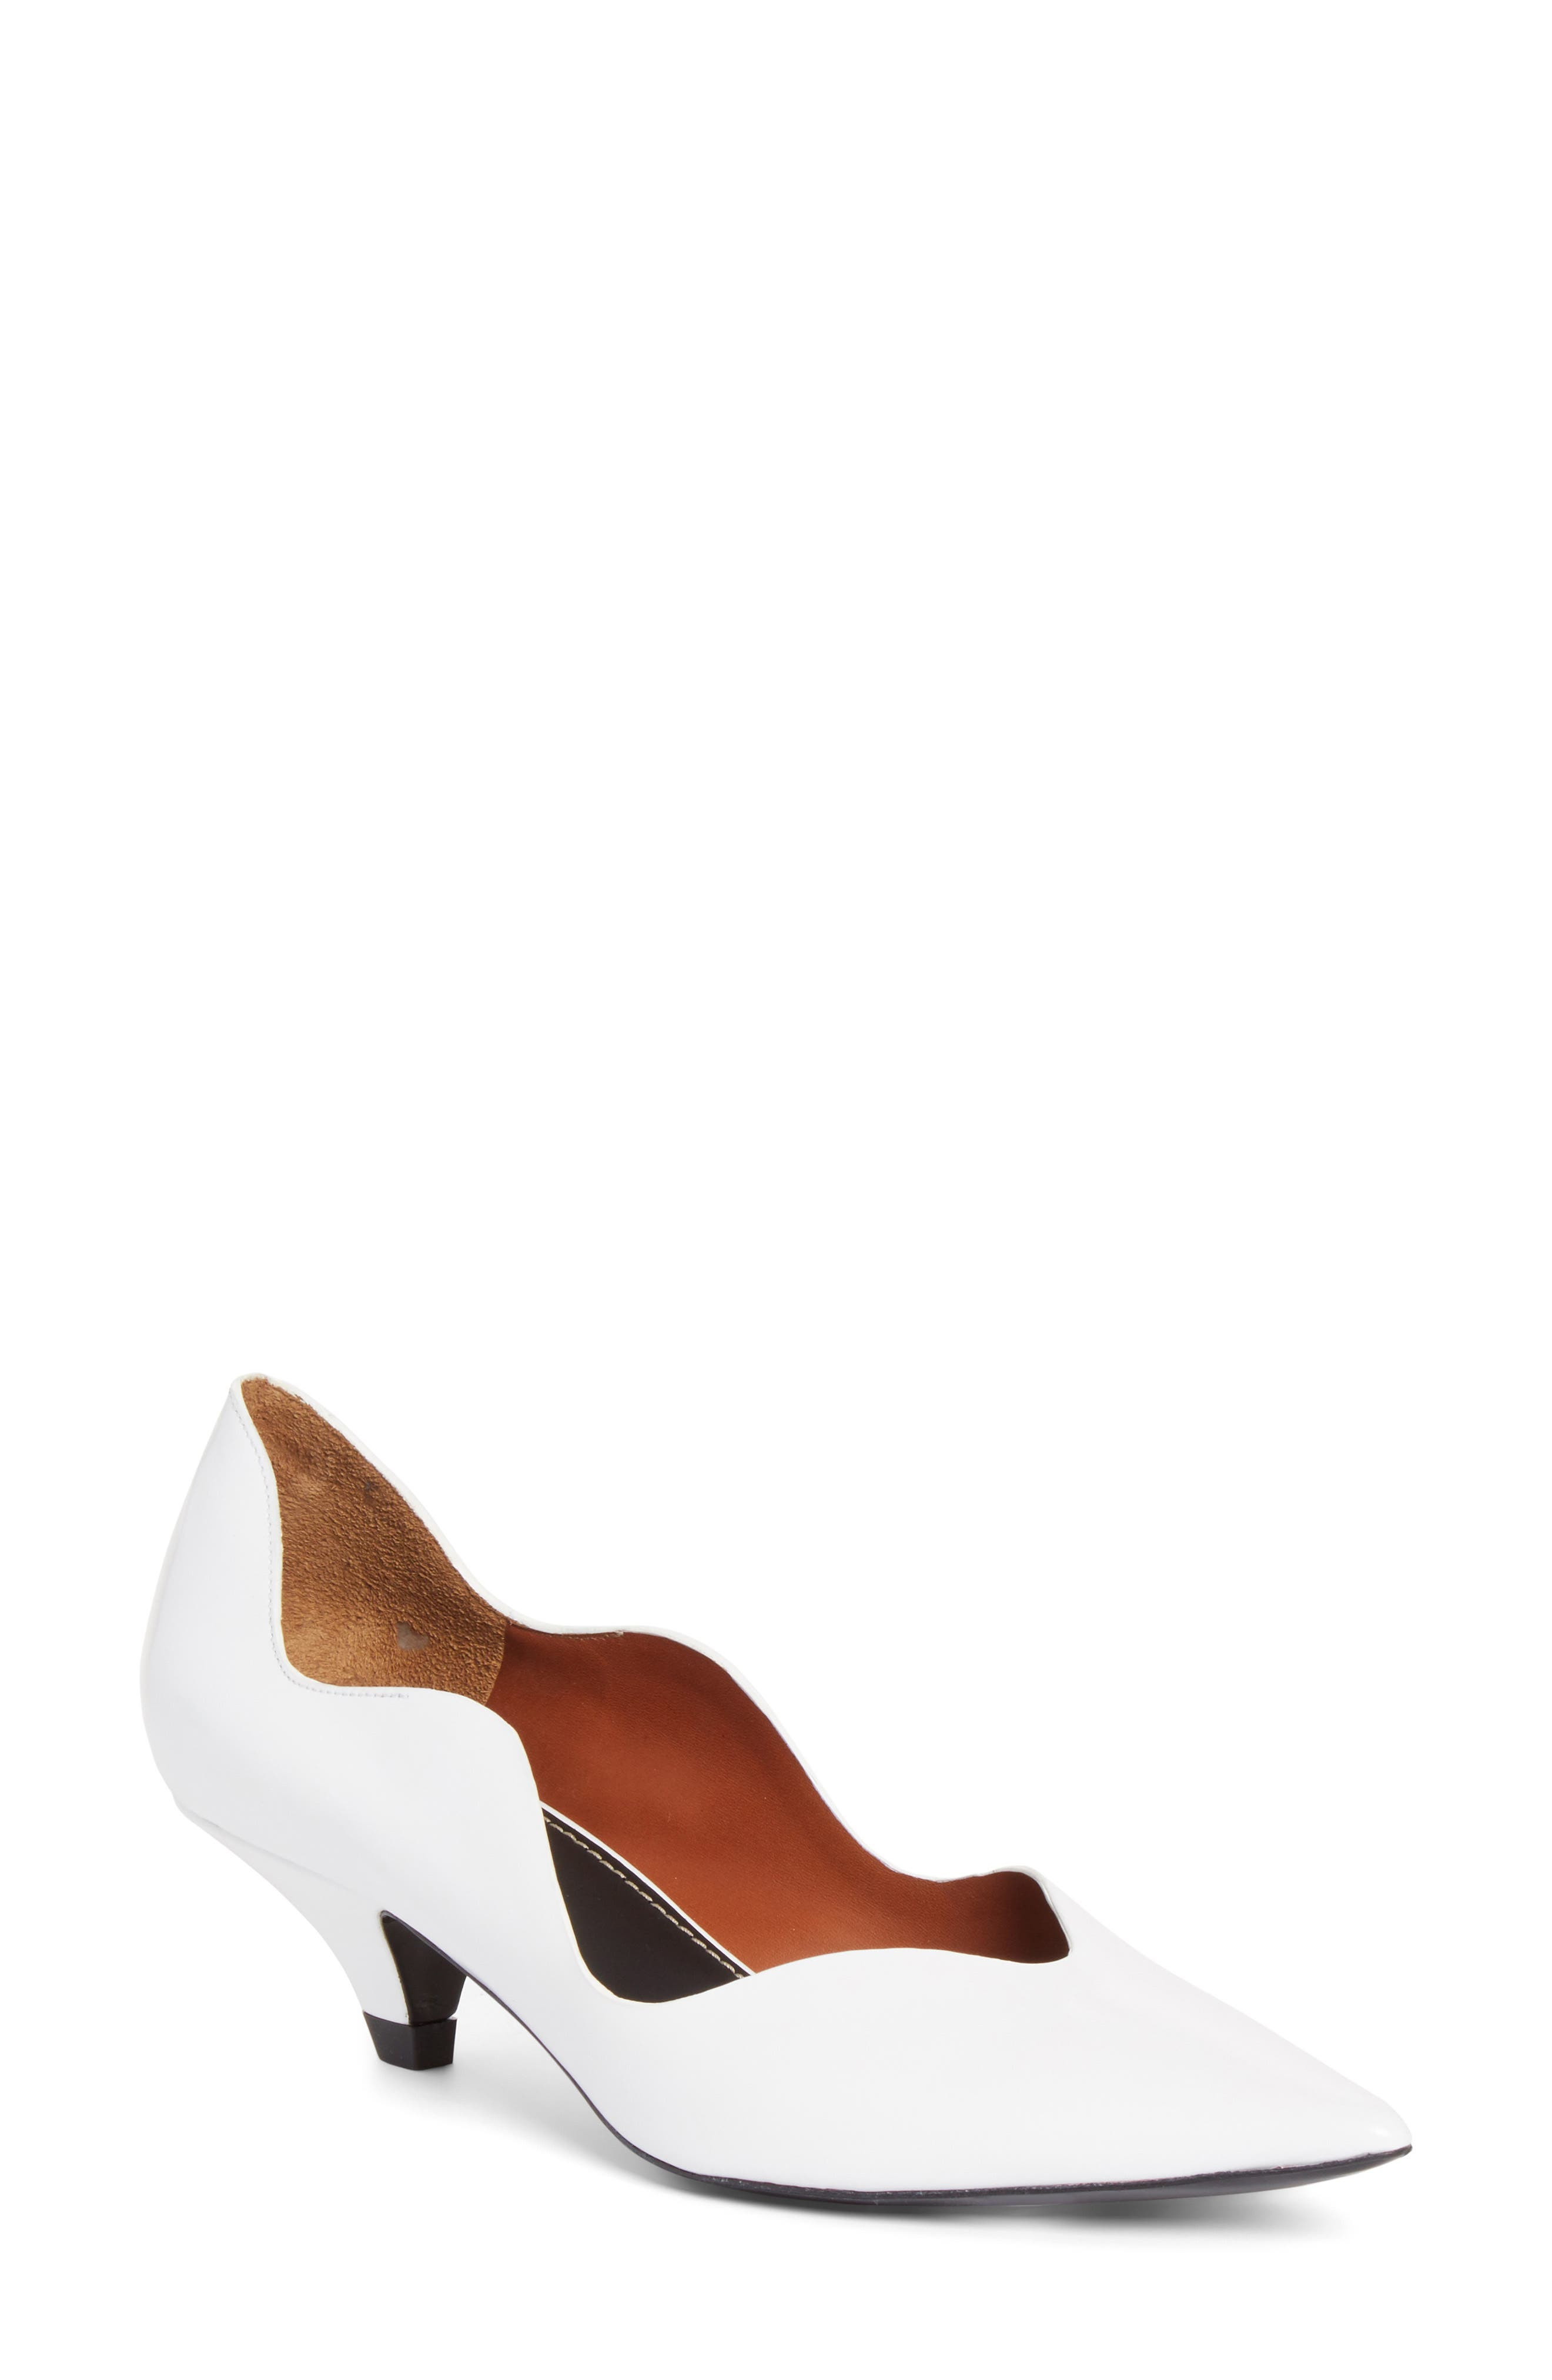 Wave Pointy Toe Pump,                             Main thumbnail 1, color,                             WHITE